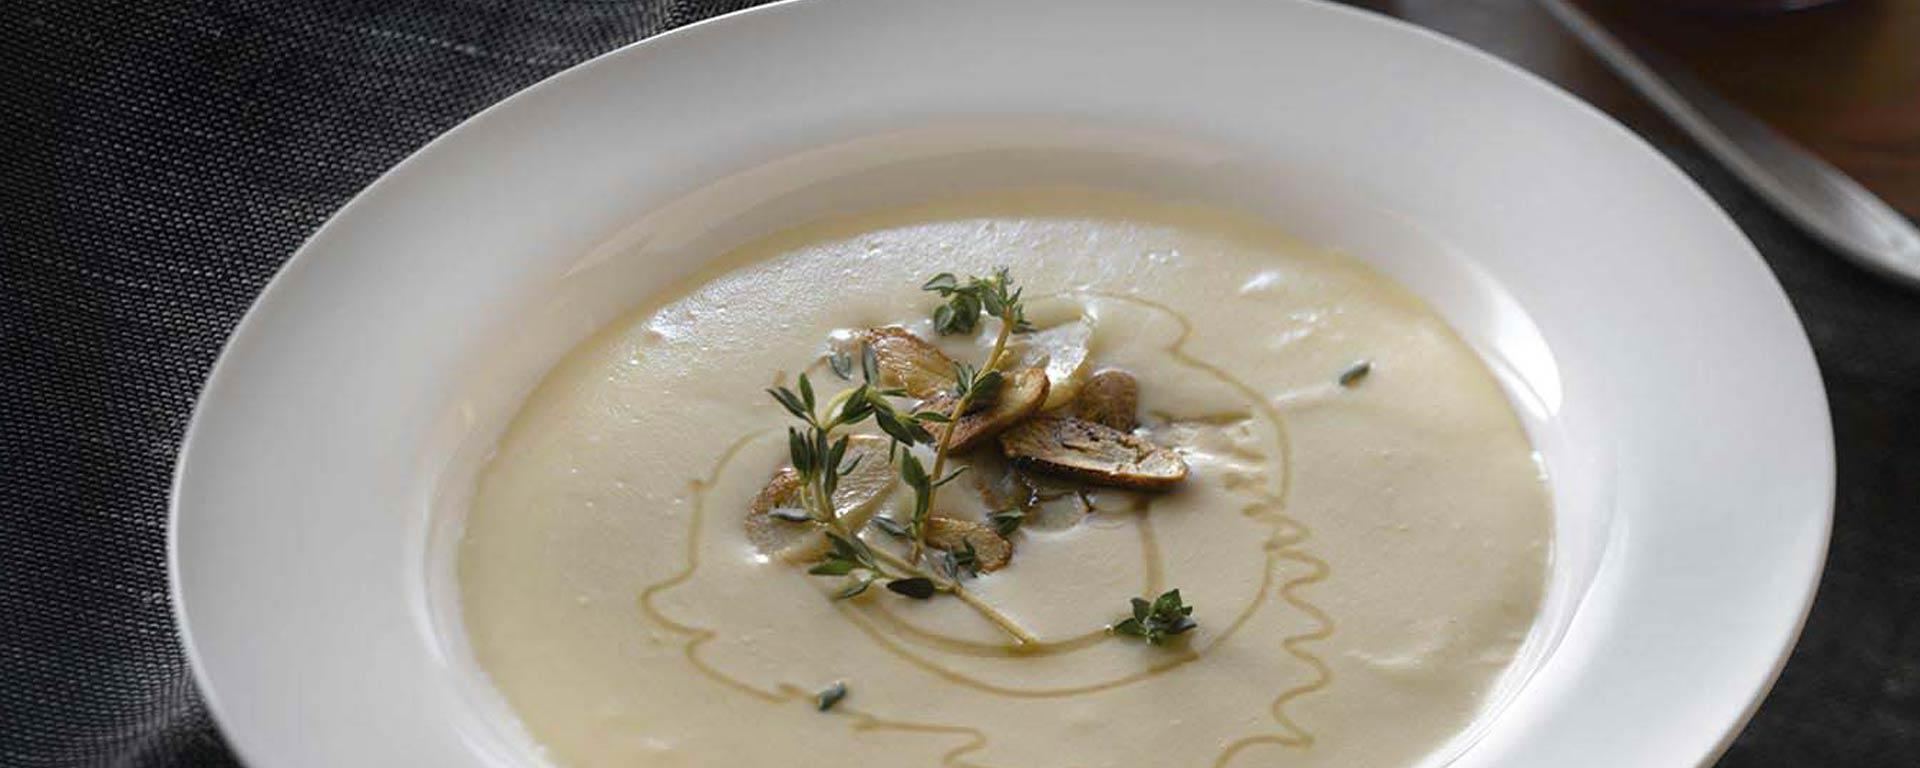 Photo for - Creamy Roasted Garlic Soup